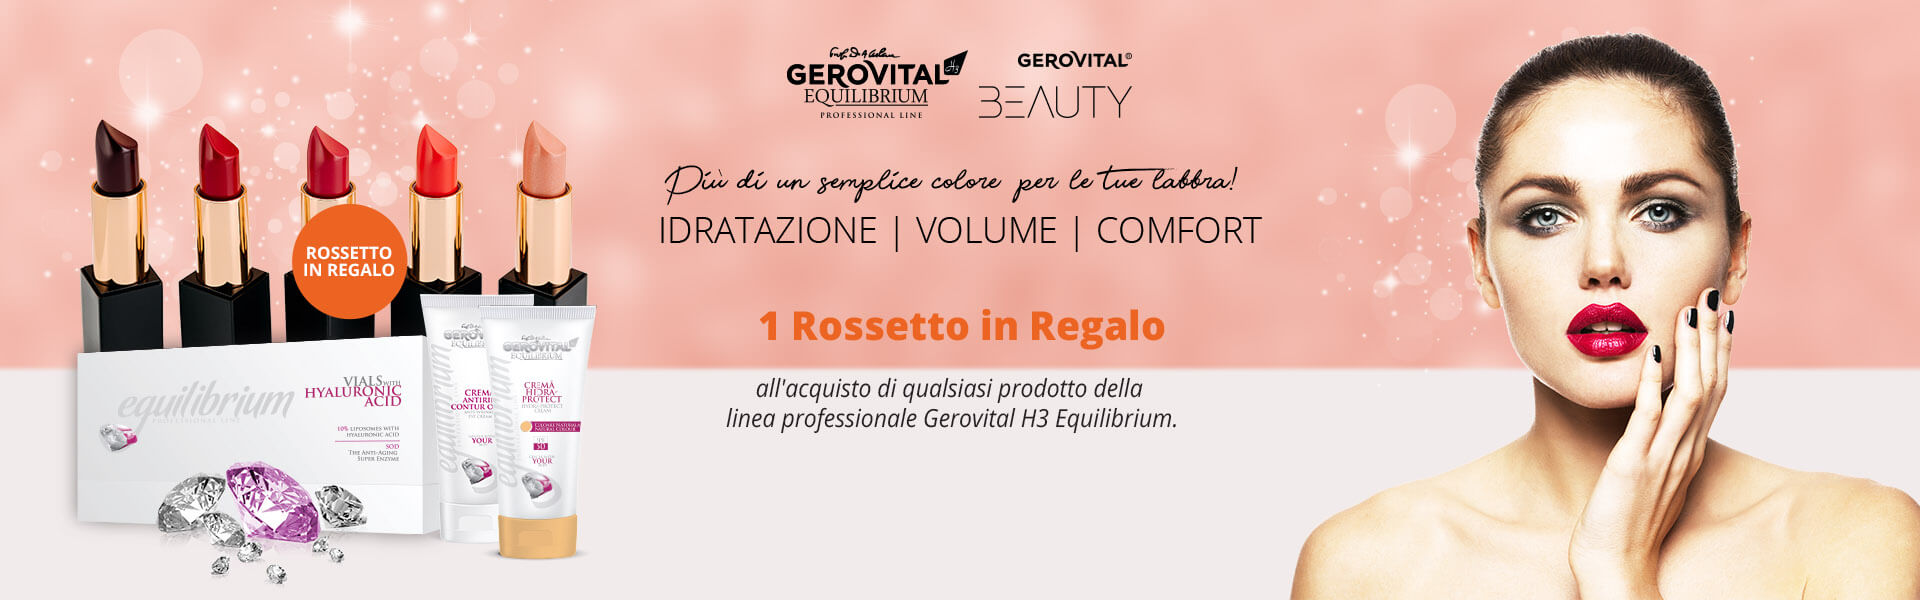 Gerovital Beauty & Equilibrium